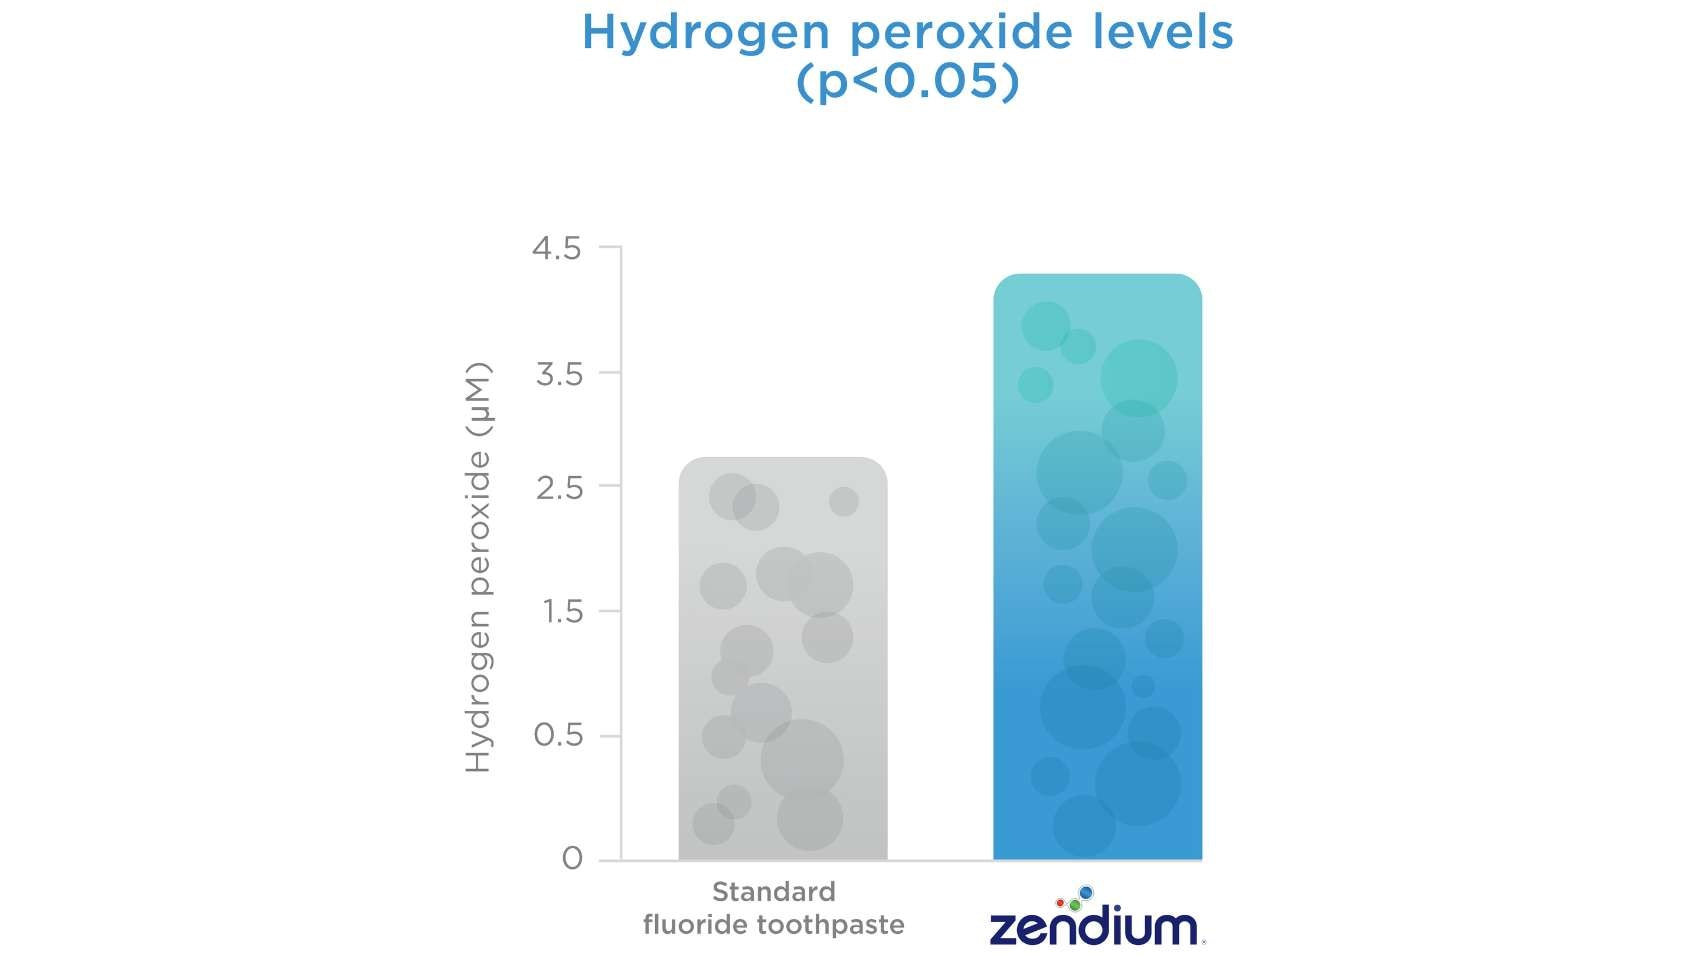 Graph showing hydrogen peroxide levels